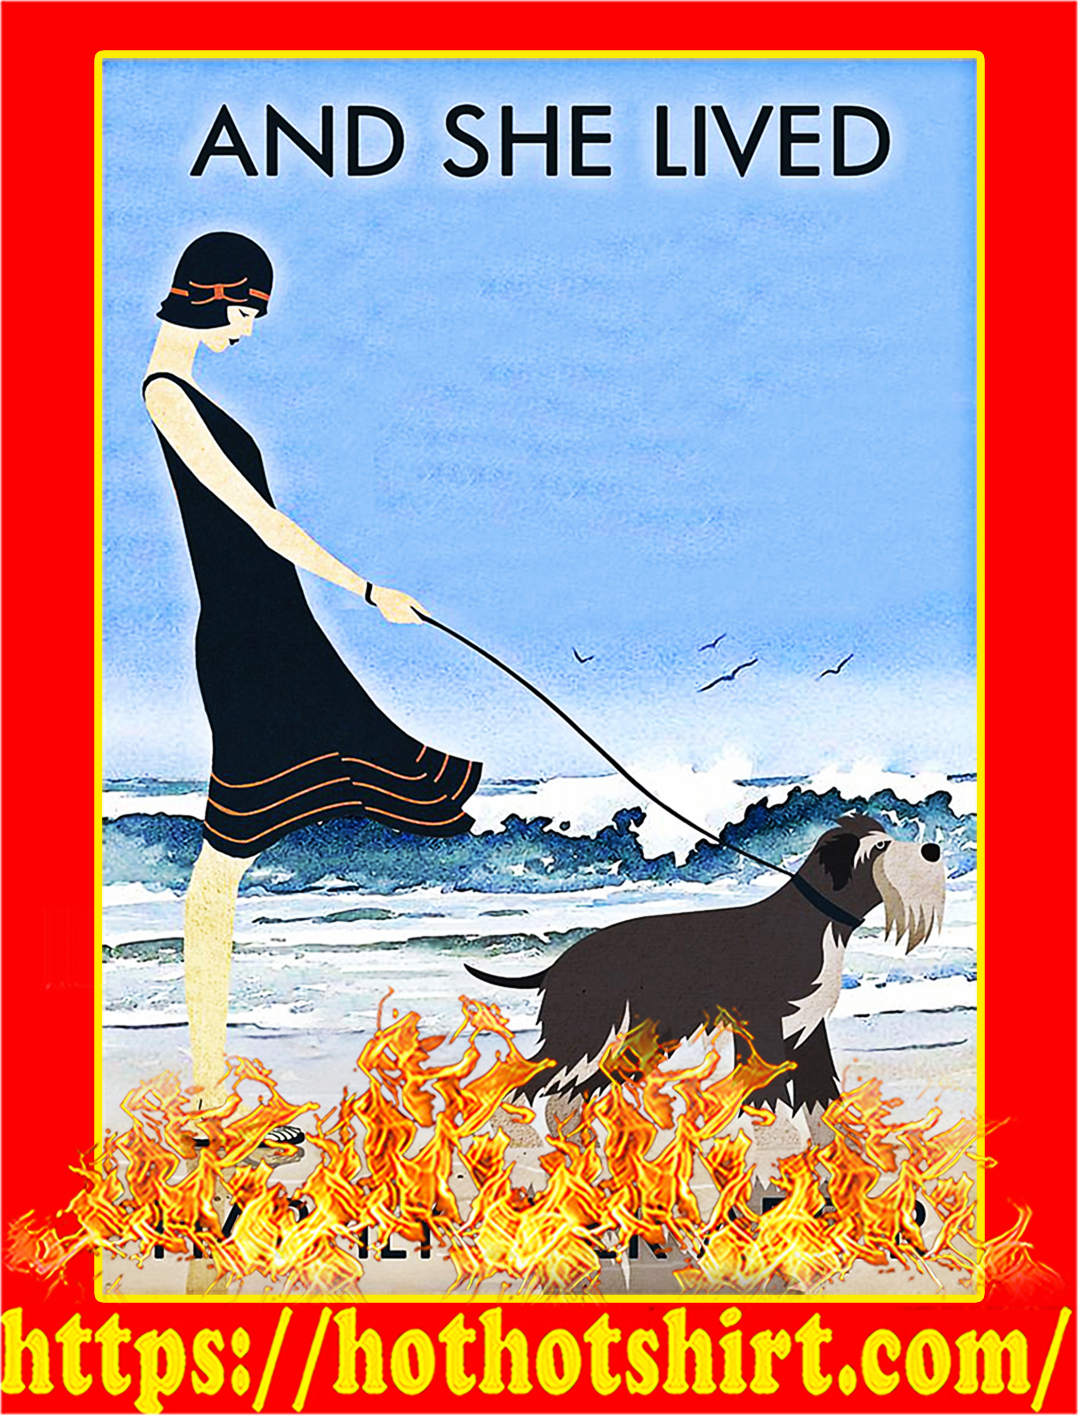 Beach and dog miniature schnauzer and she lived happily ever after poster - A2